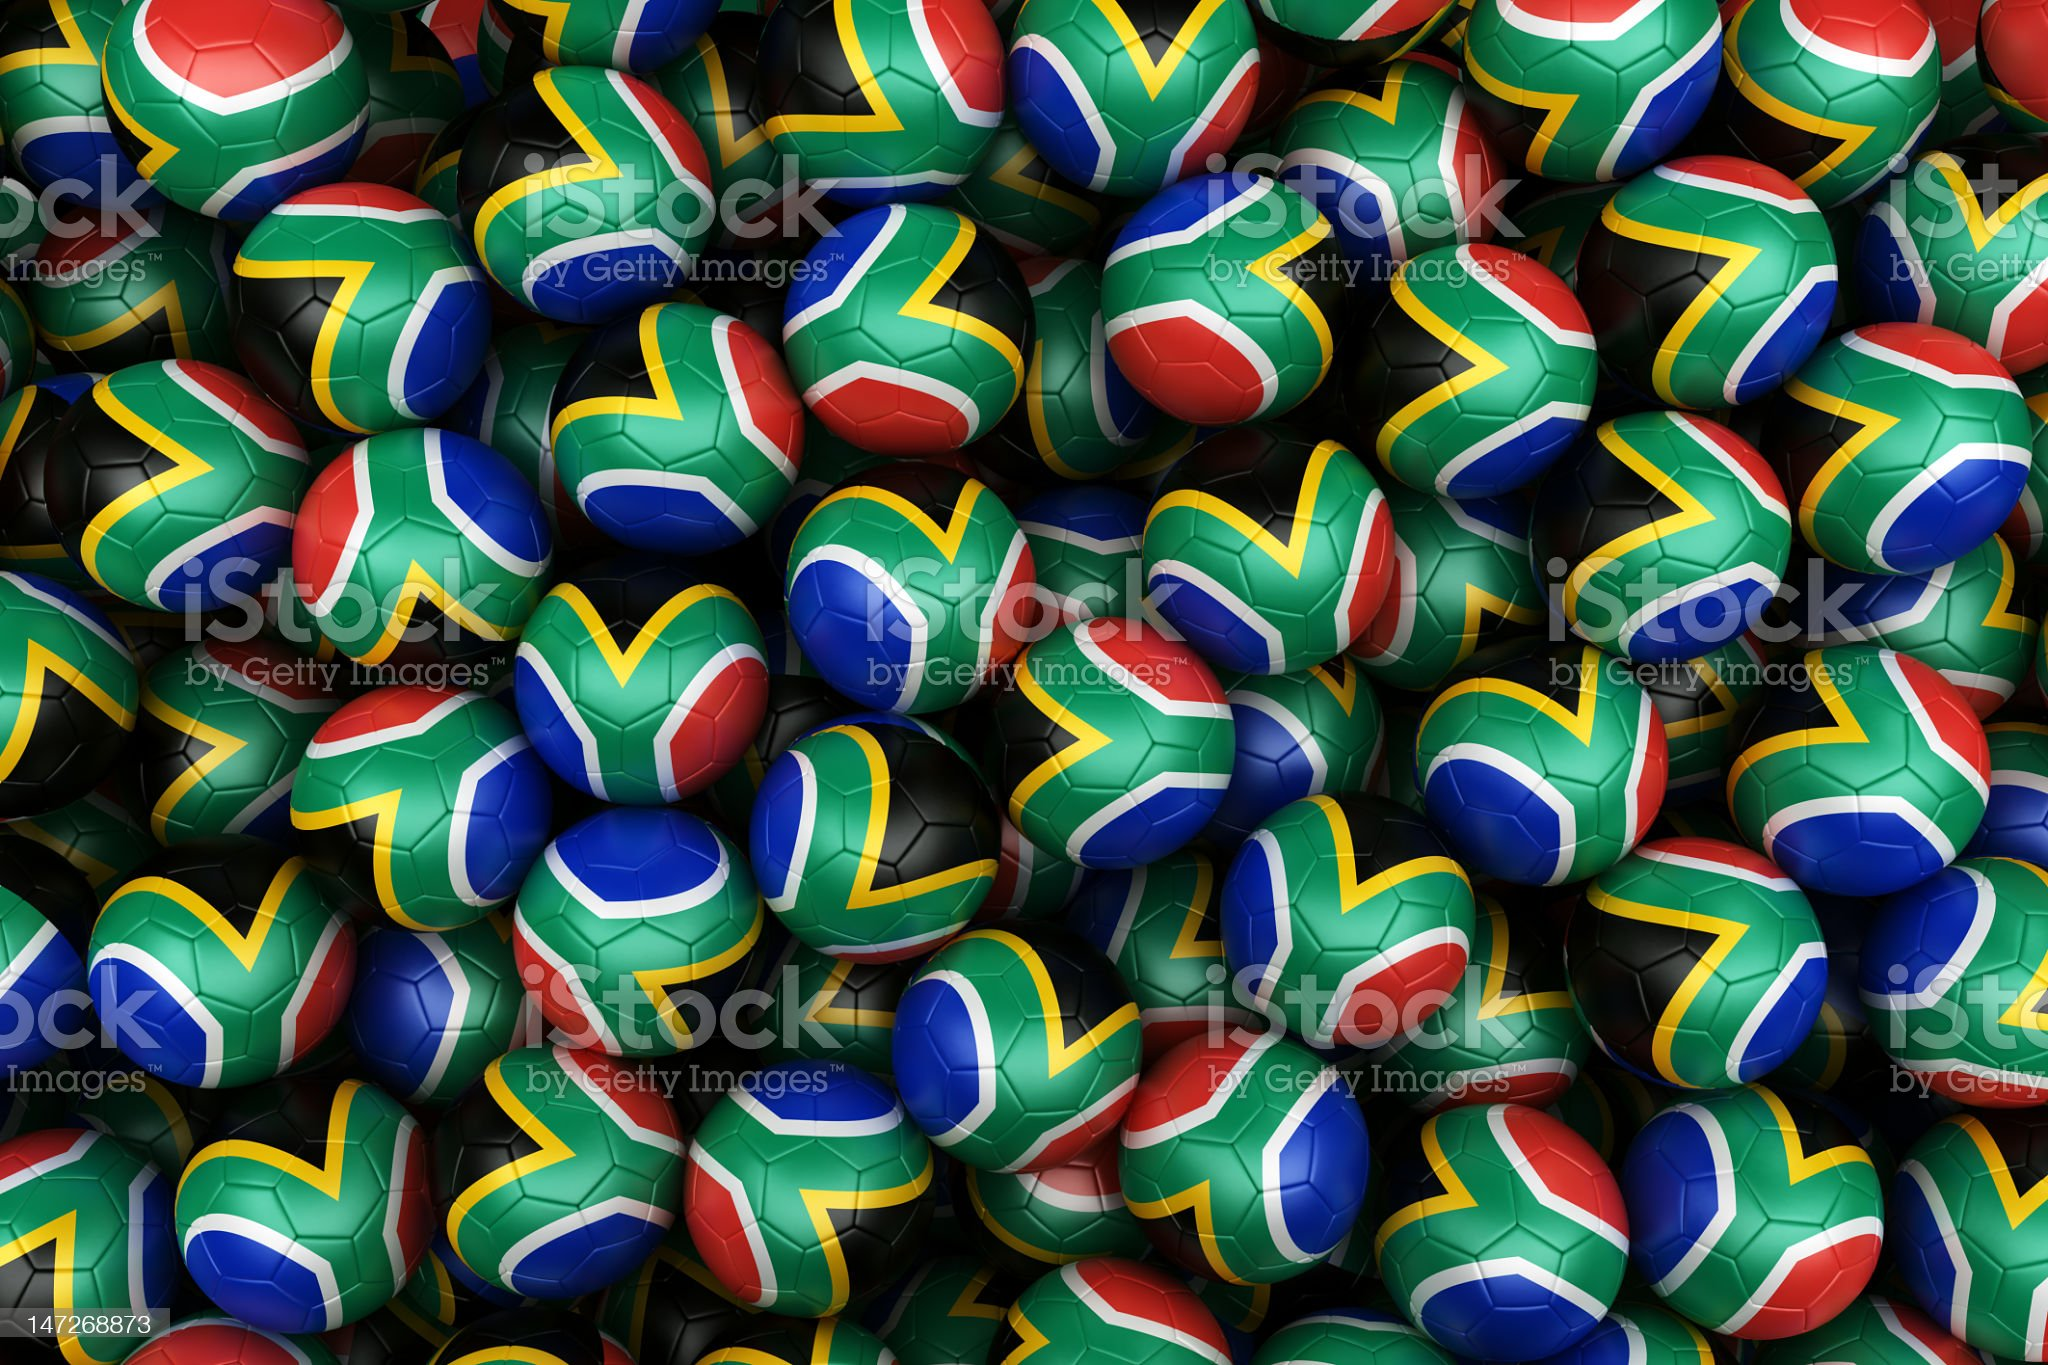 South African Soccer balls royalty-free stock photo